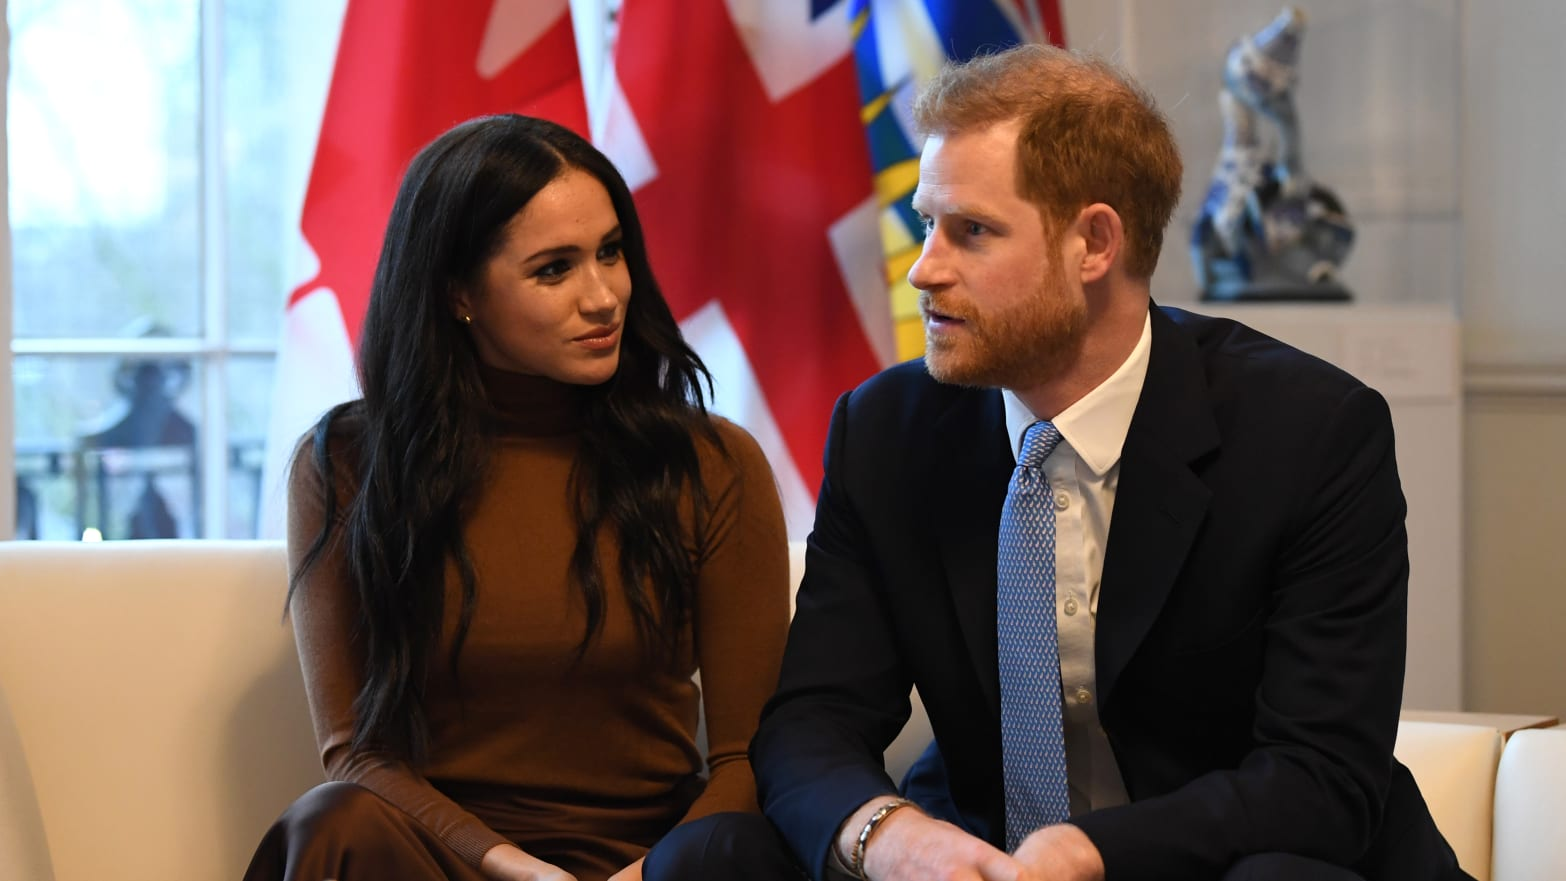 ouun6w2njpse1m https www thedailybeast com meghan markle and prince harry discussed miscarriage op ed in the new york times with royals